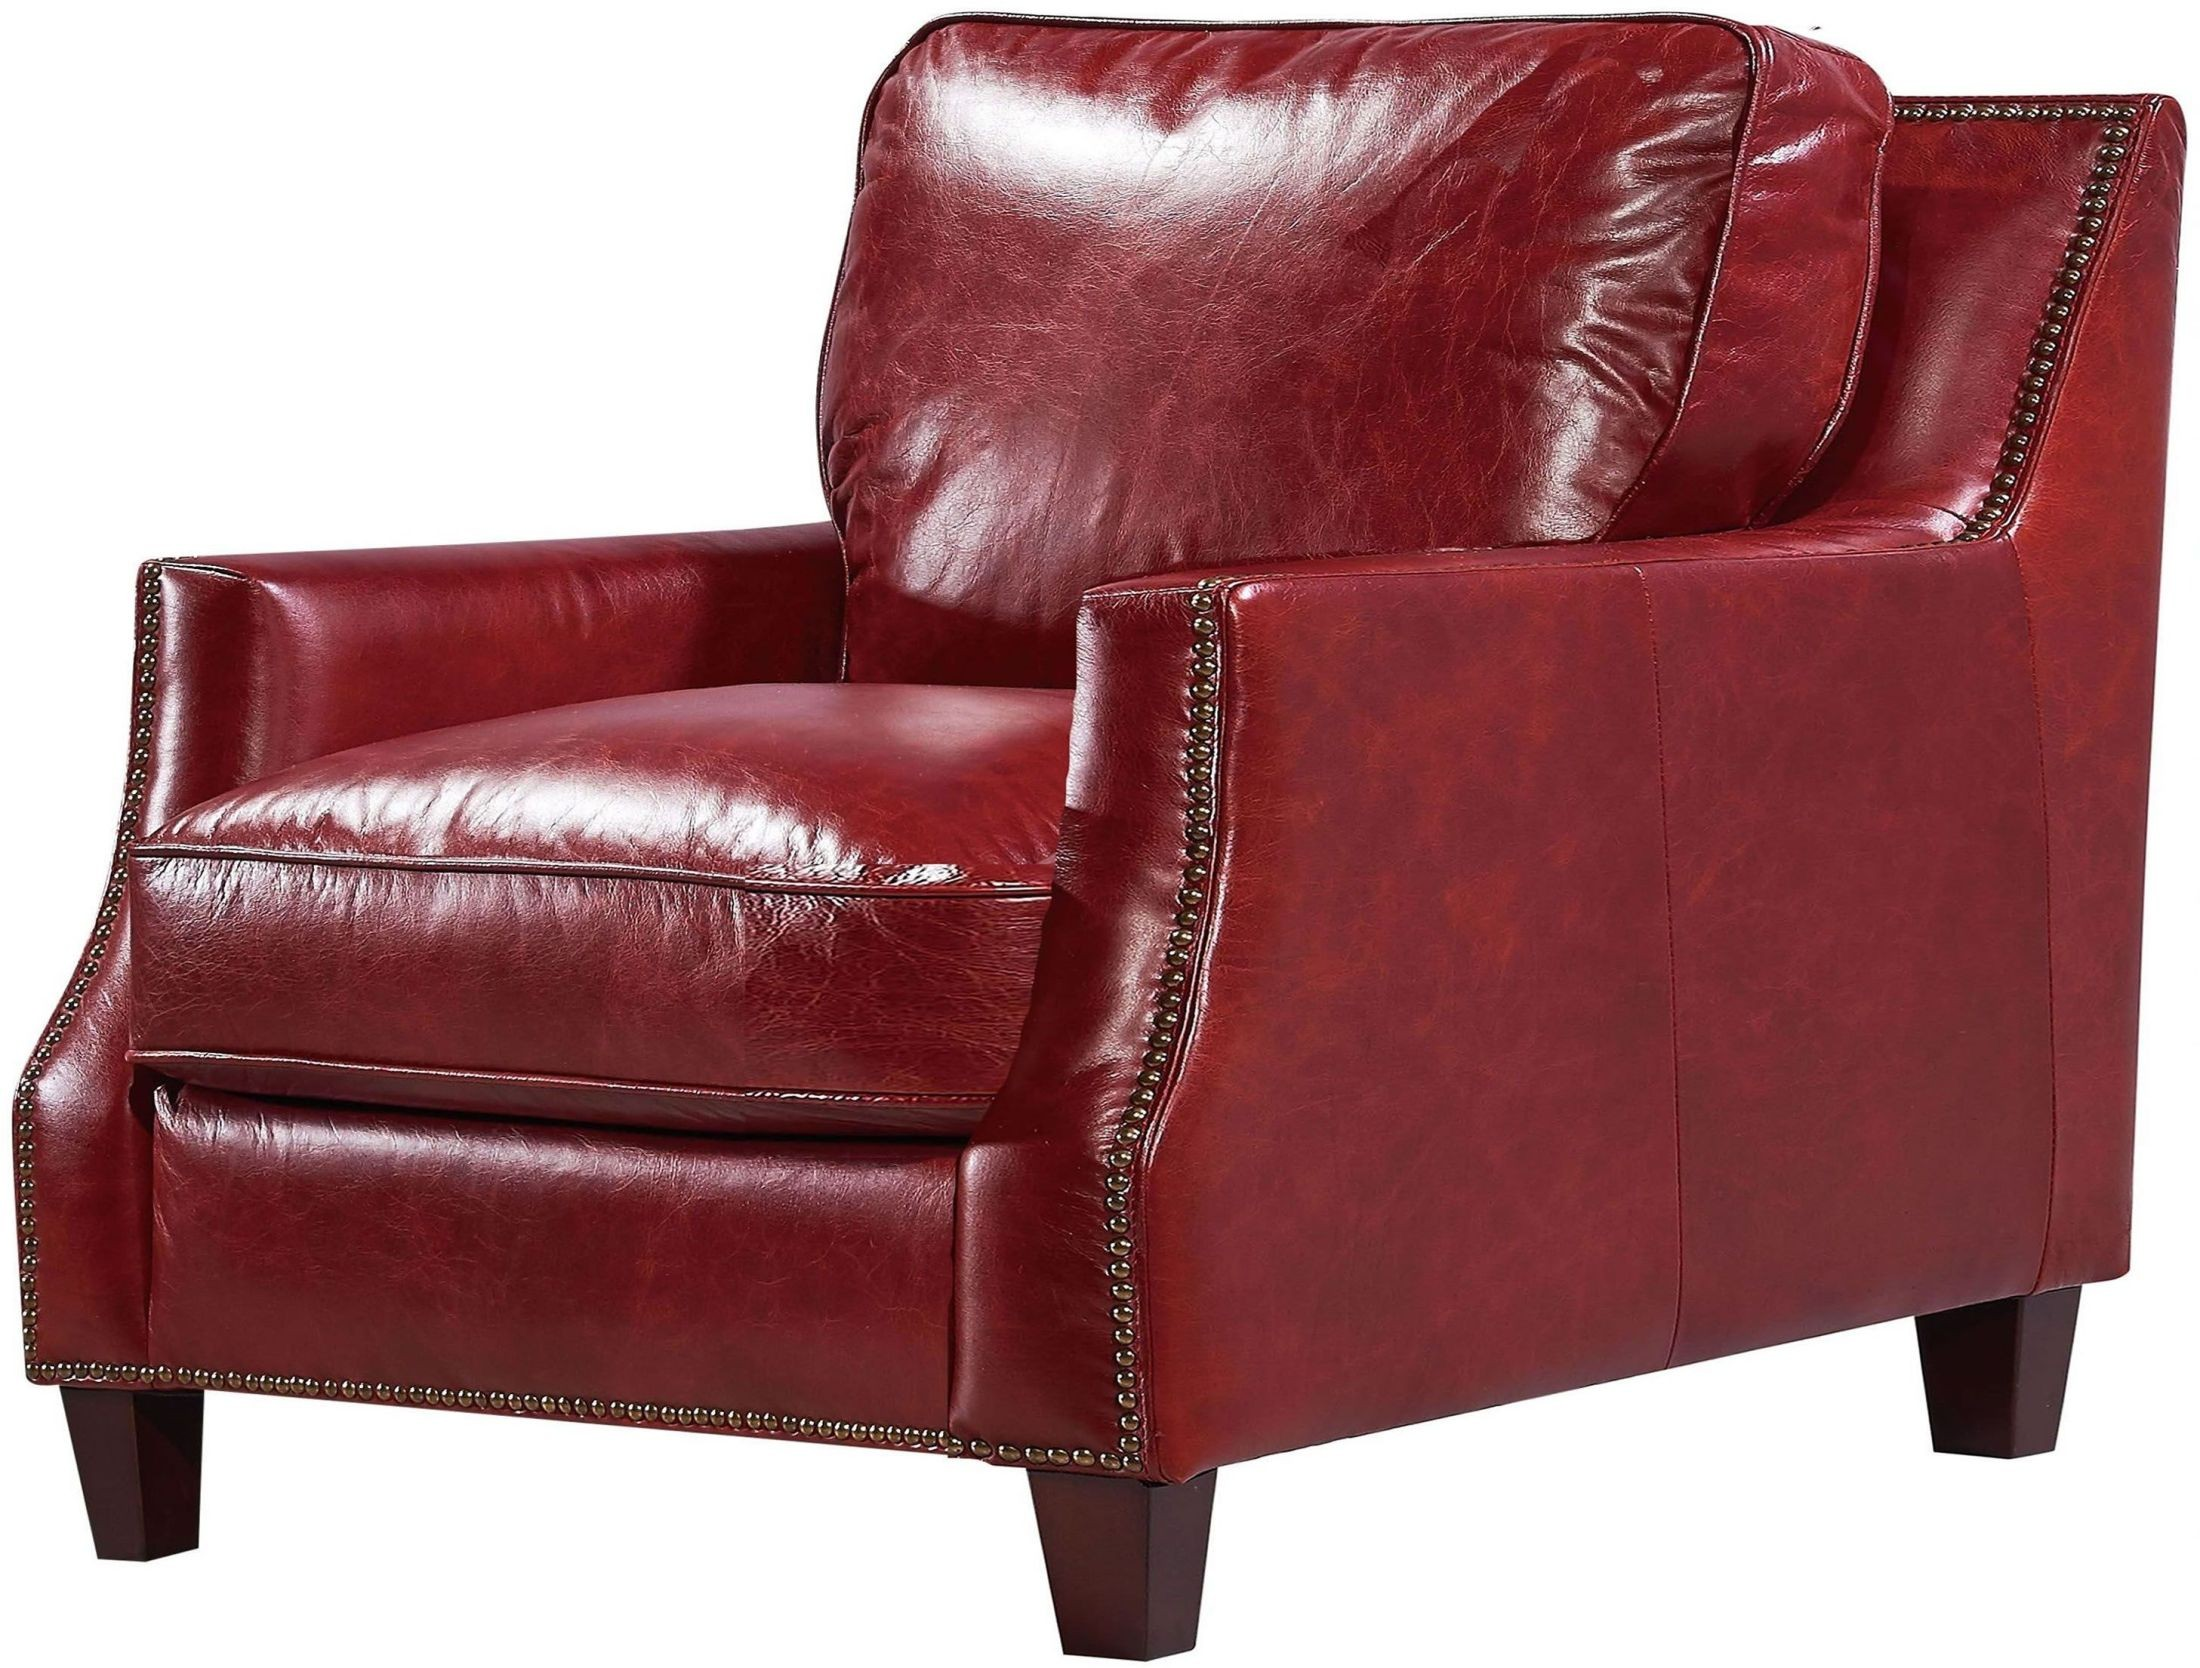 Geor owne Oakridge Red Leather Living Room Set from Luxe Leather